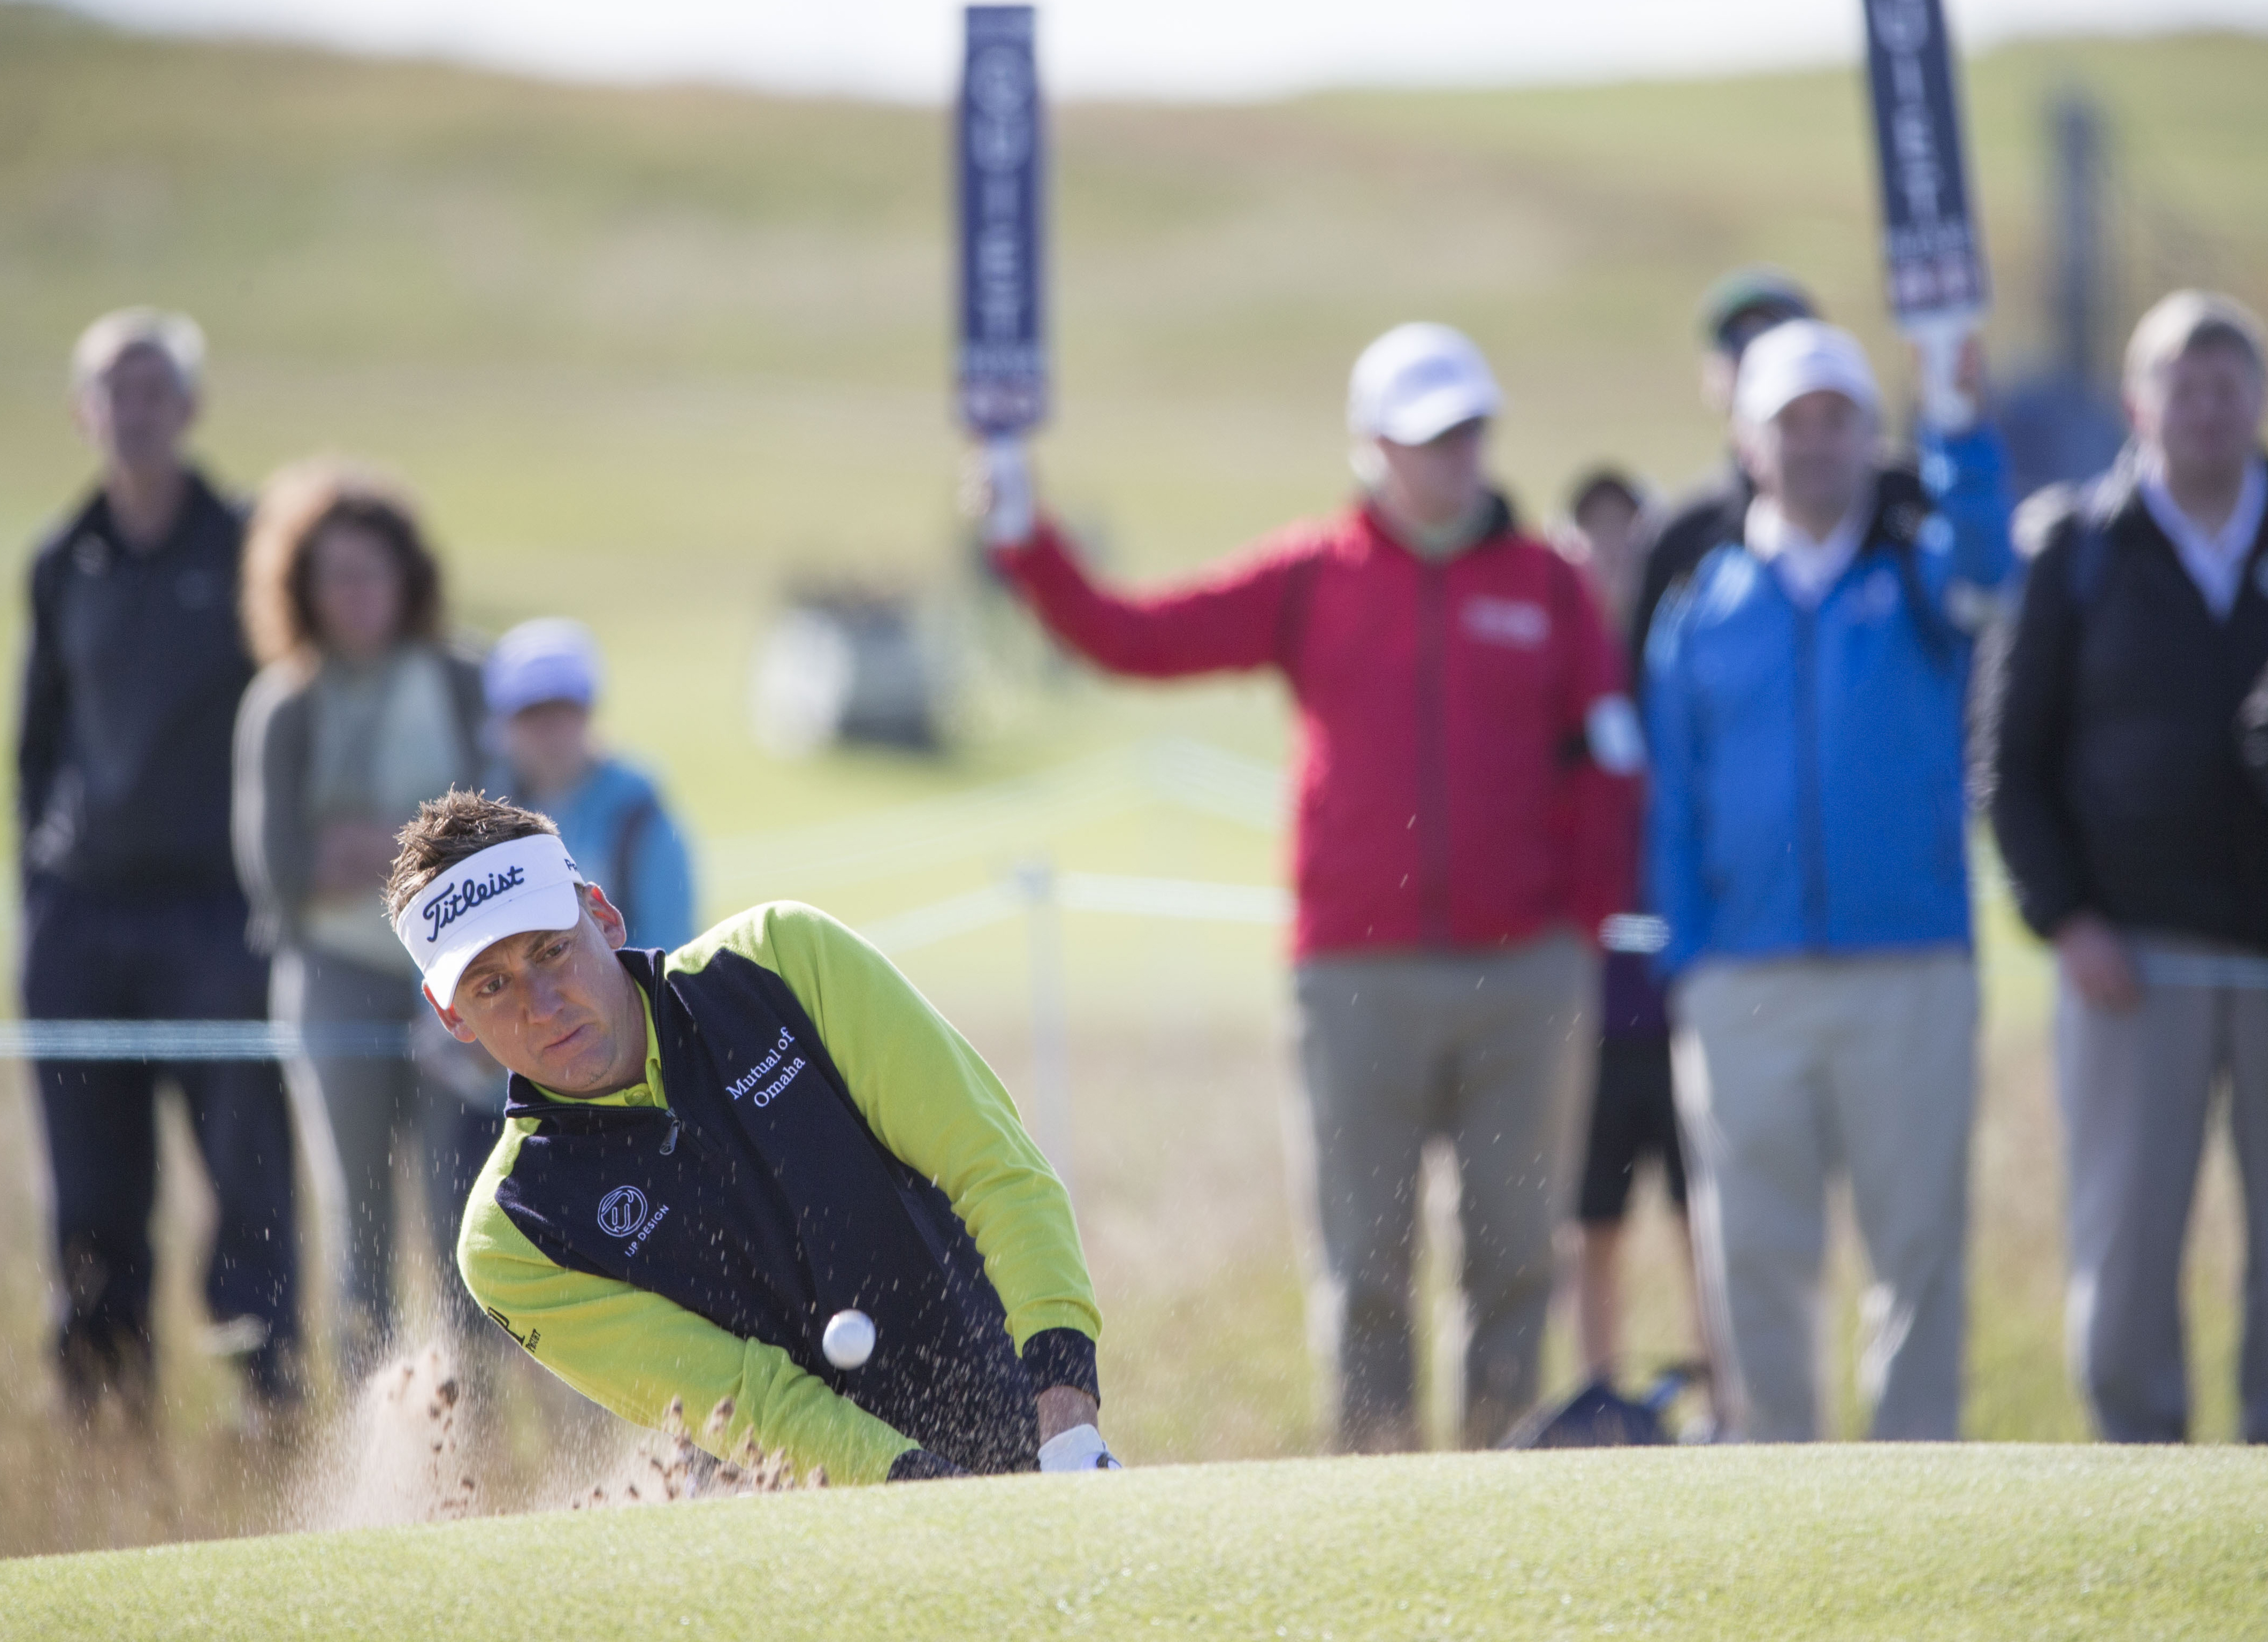 England's Ian Poulter plays from the green side bunker on the 2nd hole during day one of the Scottish Open at Gullane Golf Club, in Gullane Scotland Thursday July 9, 2015. (Kenny Smith/PA via AP) UNITED KINGDOM OUT  NO SALES NO ARCHIVE